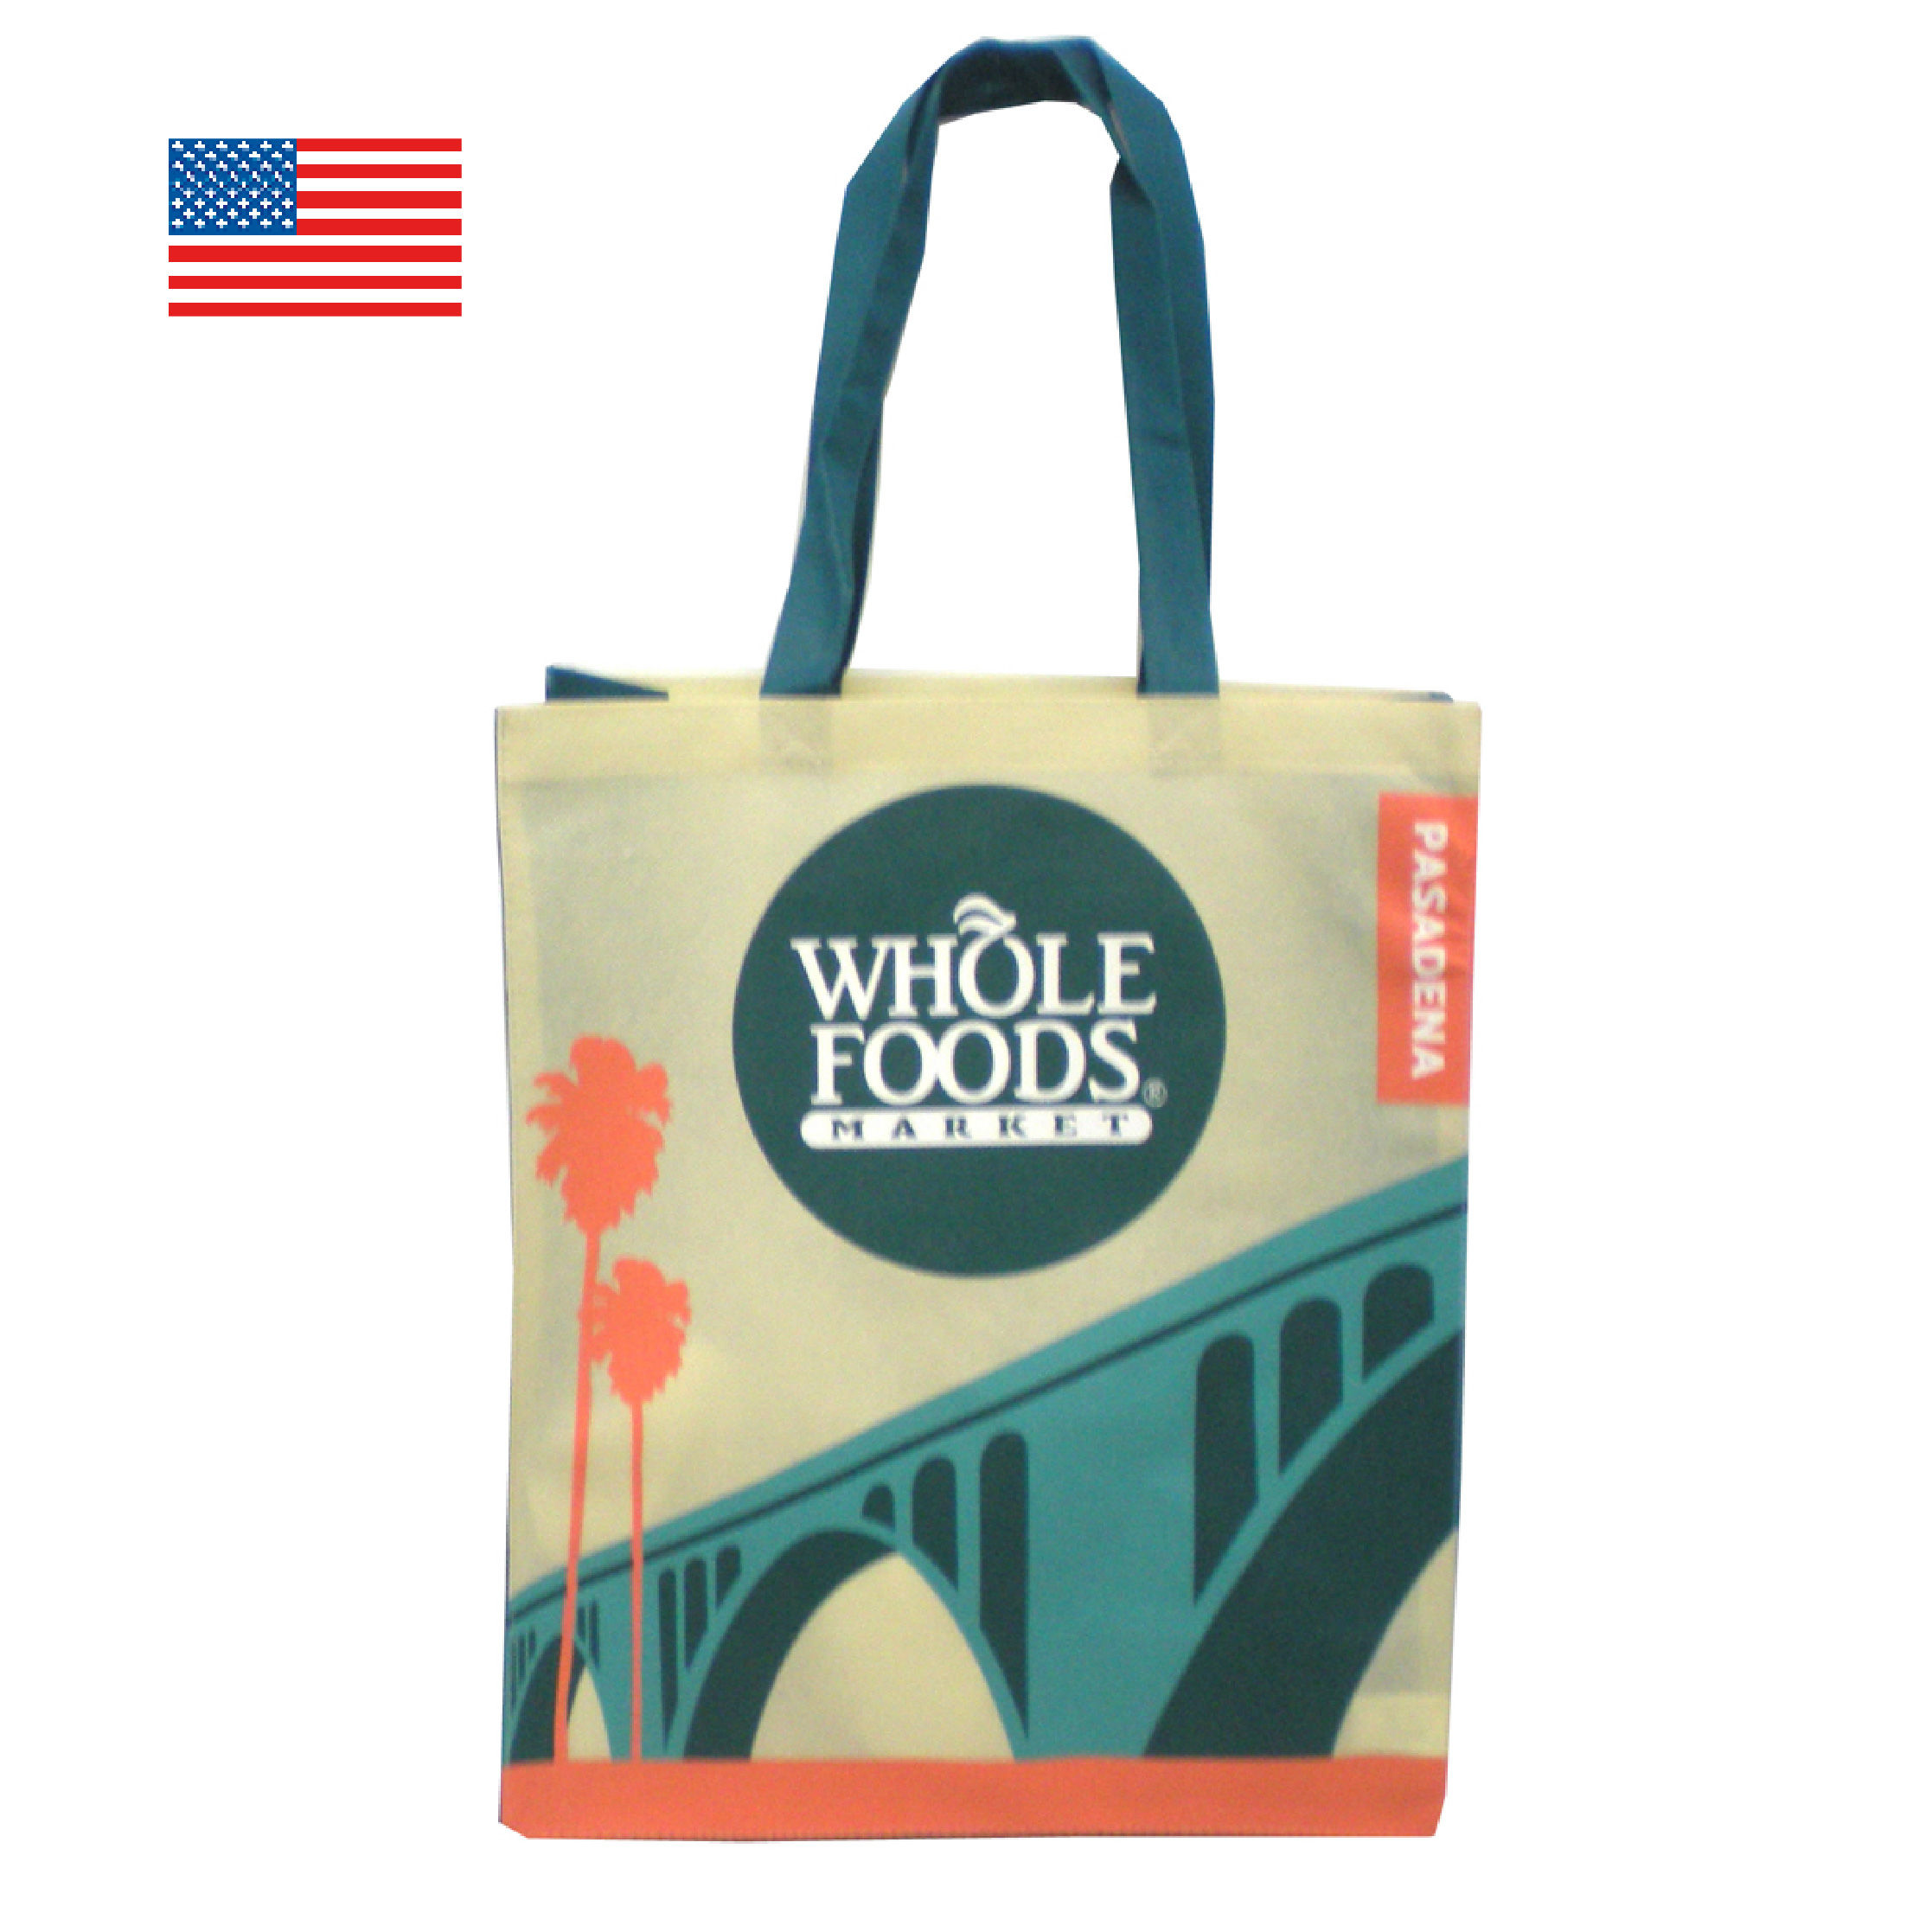 WHOLE FOODS ホールフーズ エコバッグ/パサデネ 【アメリカ直輸入】